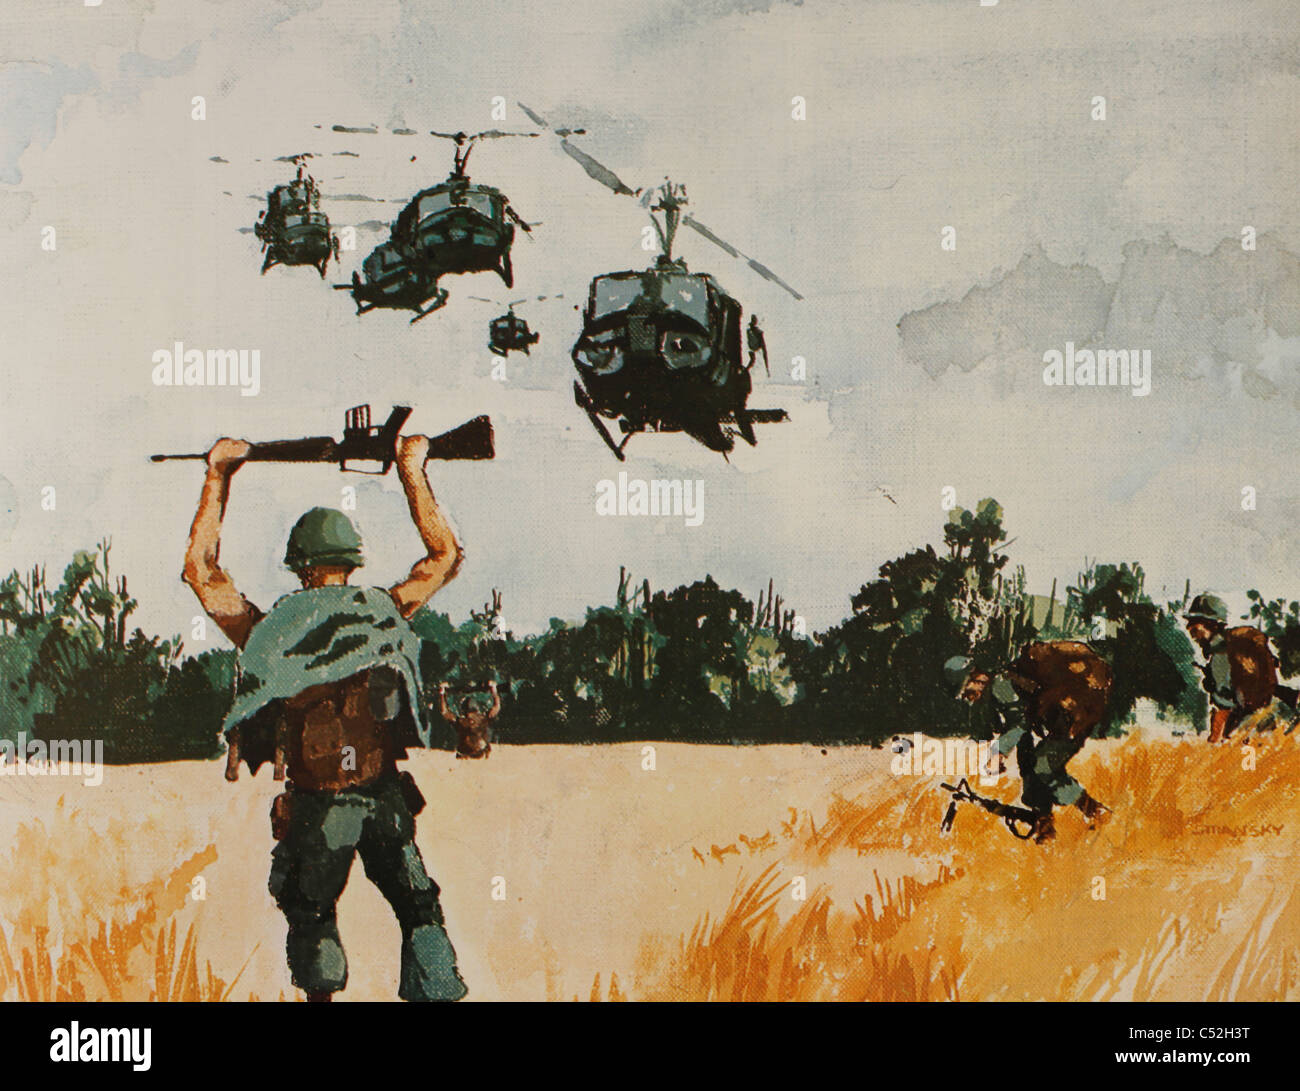 reproduction of Watercolor painting printed in 1st Air Cavalry brochure from the Vietnam War. helicopter extraction - Stock Image